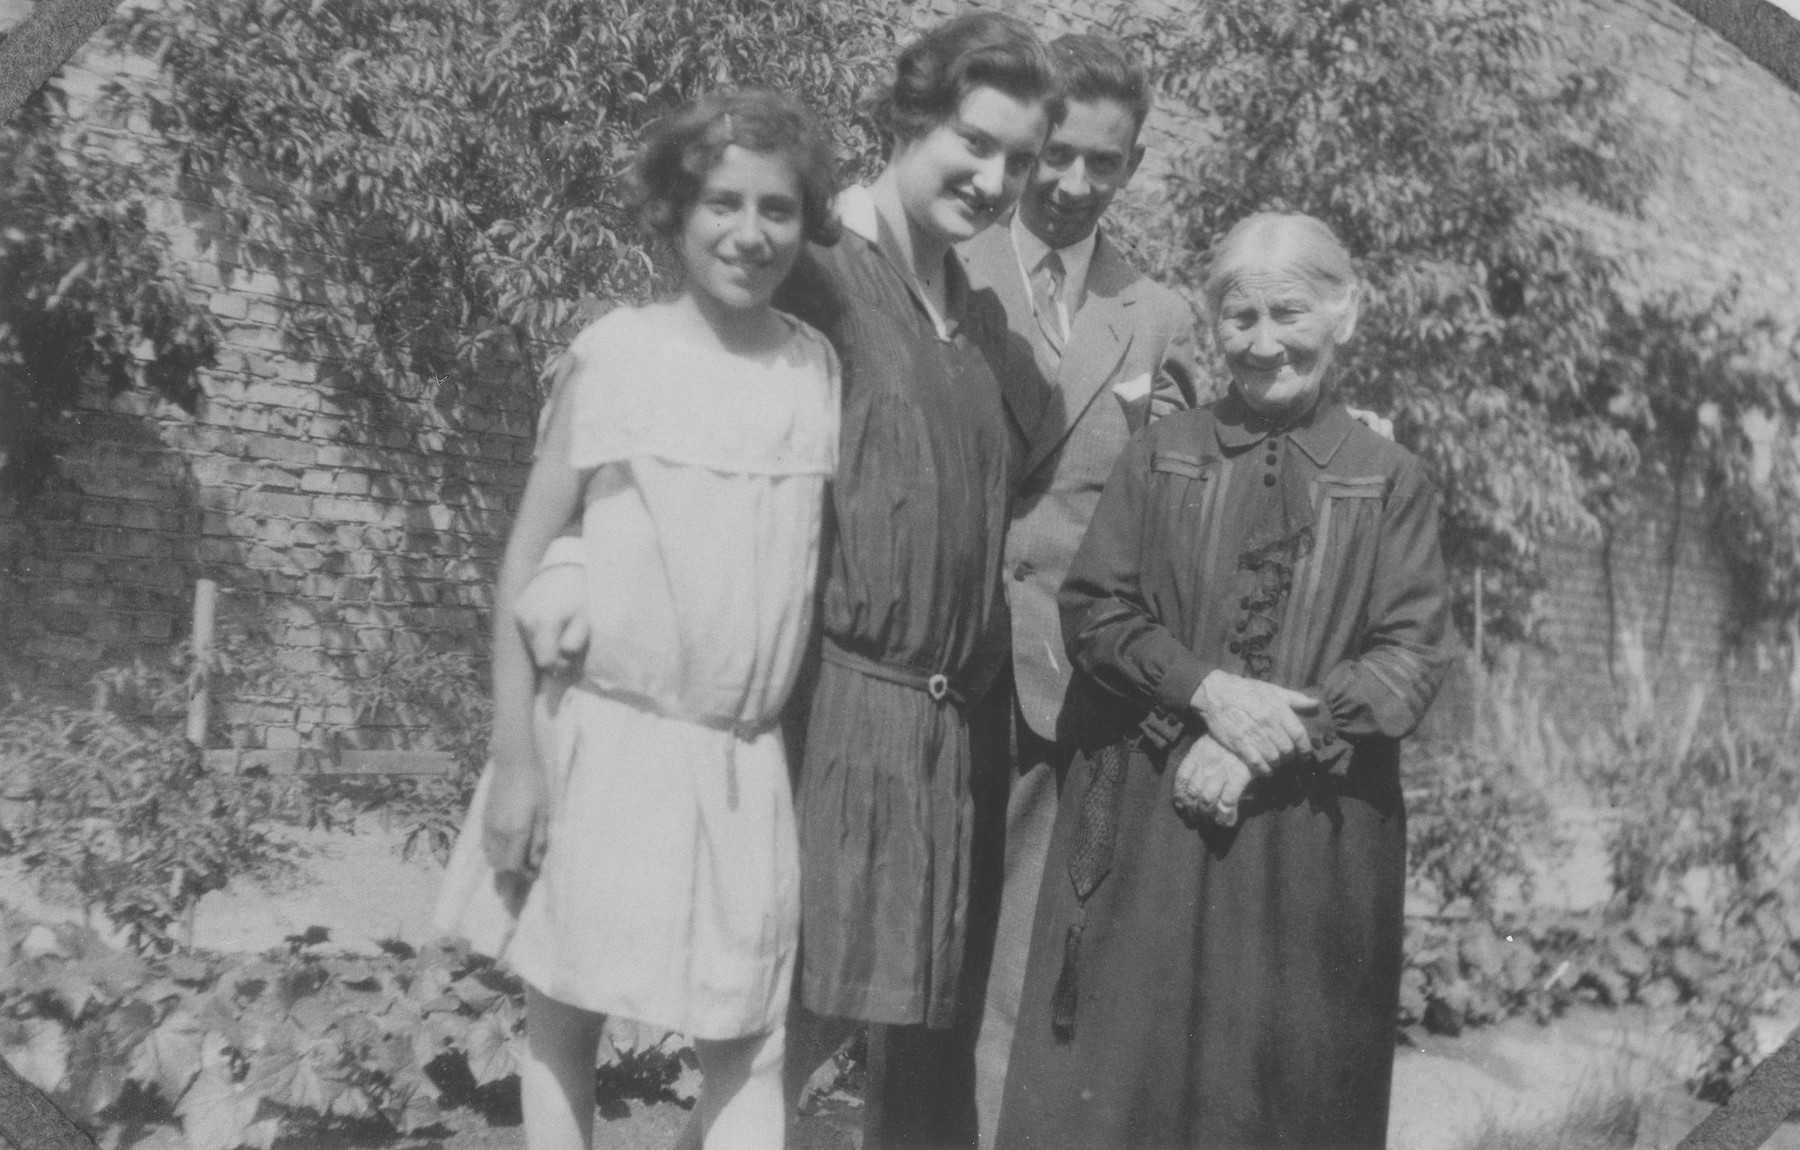 Portrait of members of the Rueb family in back of their home in Guntersblum, Germany.  Pictured from left to right are Beatrice Schlosser (visiting from New York), Hede Rueb, Emil Rueb and grandmother, Dina Rueb.